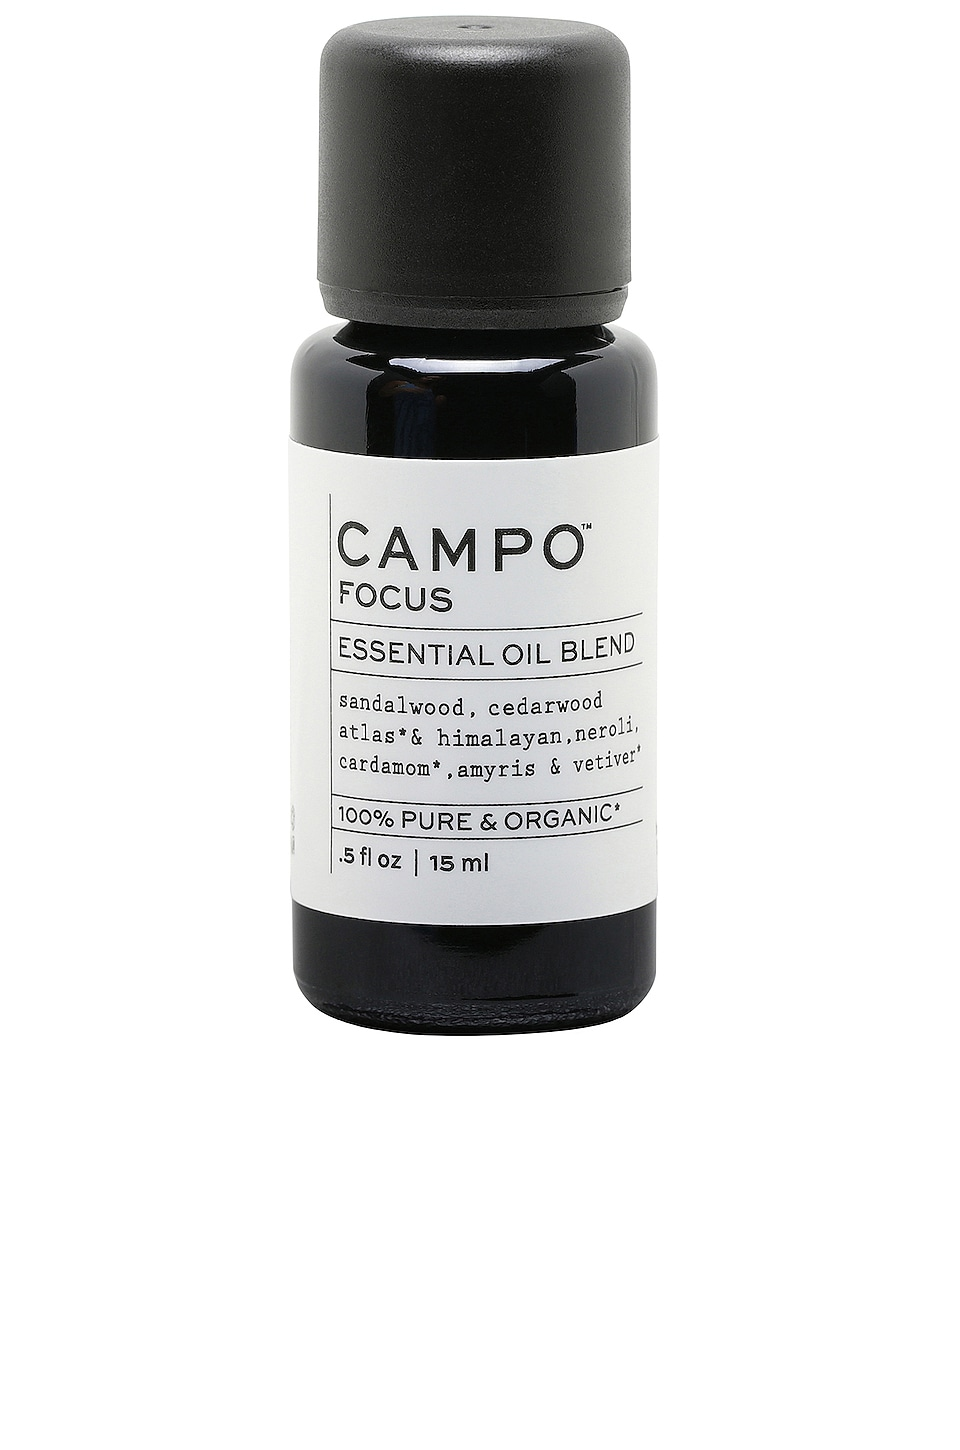 CAMPO Focus-Grounding Blend 100% Pure Essential Oil Blend in Beauty: Na